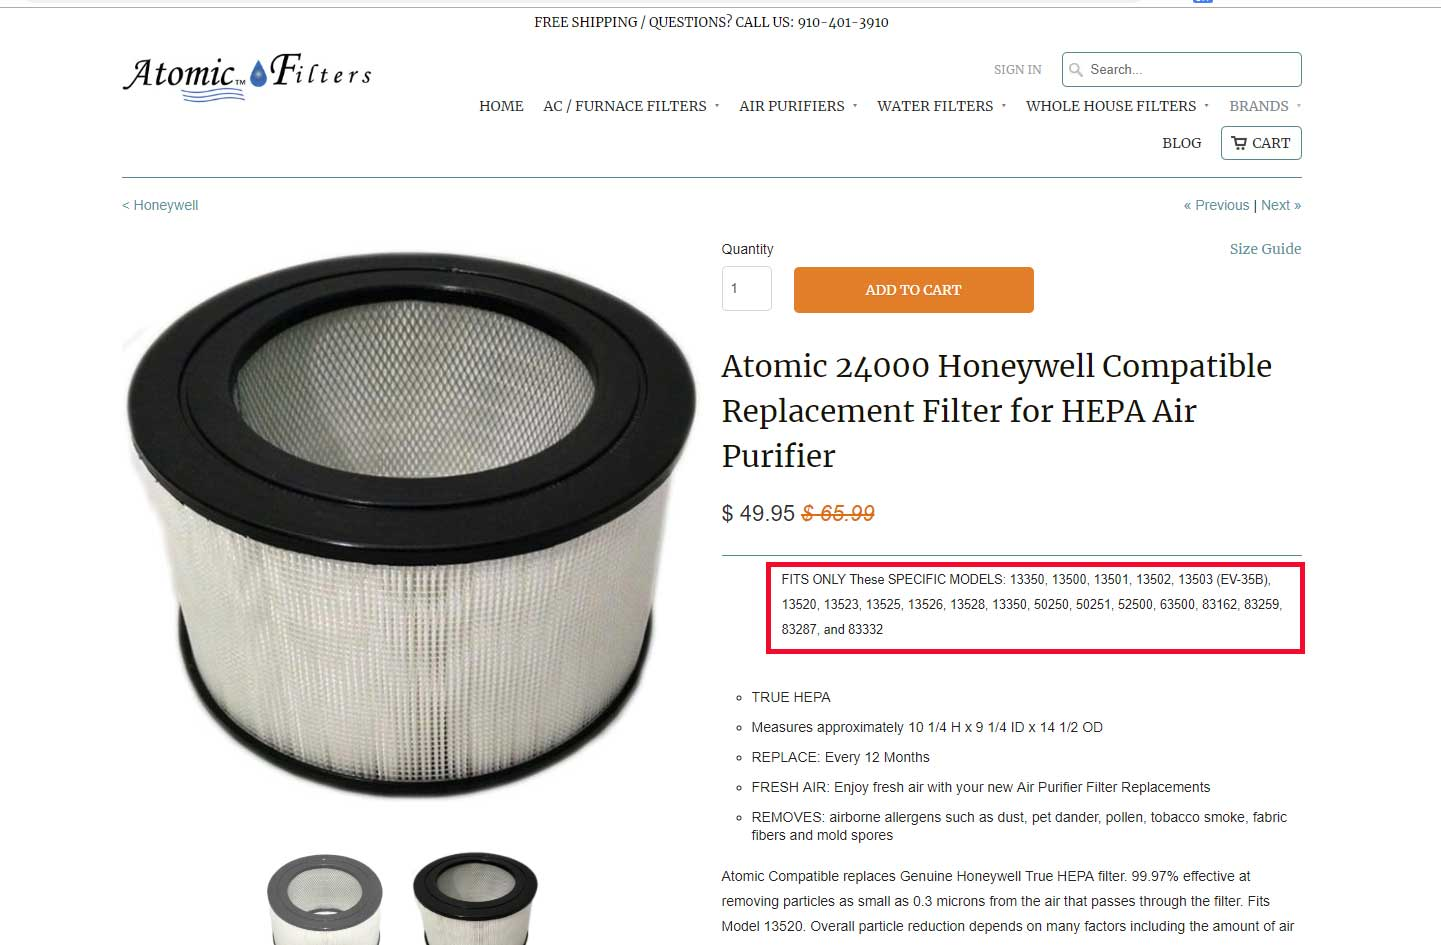 Honeywell Hepa Filter Replacement - Atomic Filters